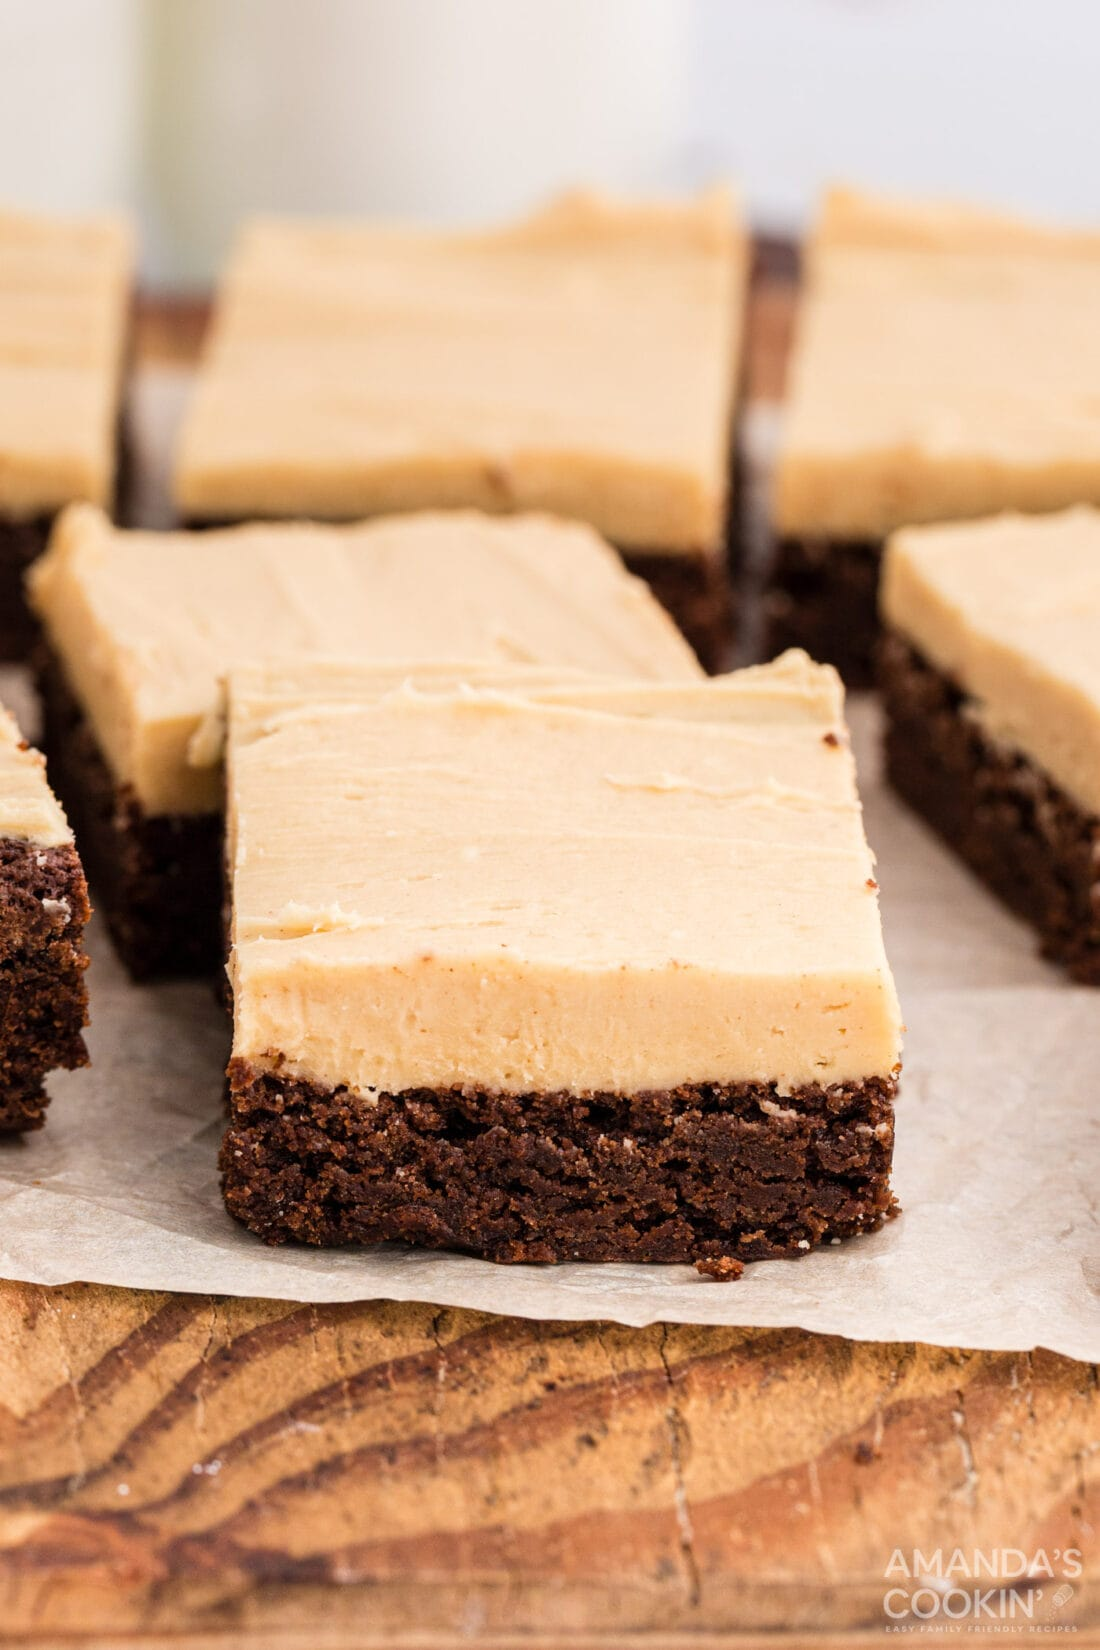 FUDGE BROWNIE SQUARES WITH PEANUT BUTTER FROSTING